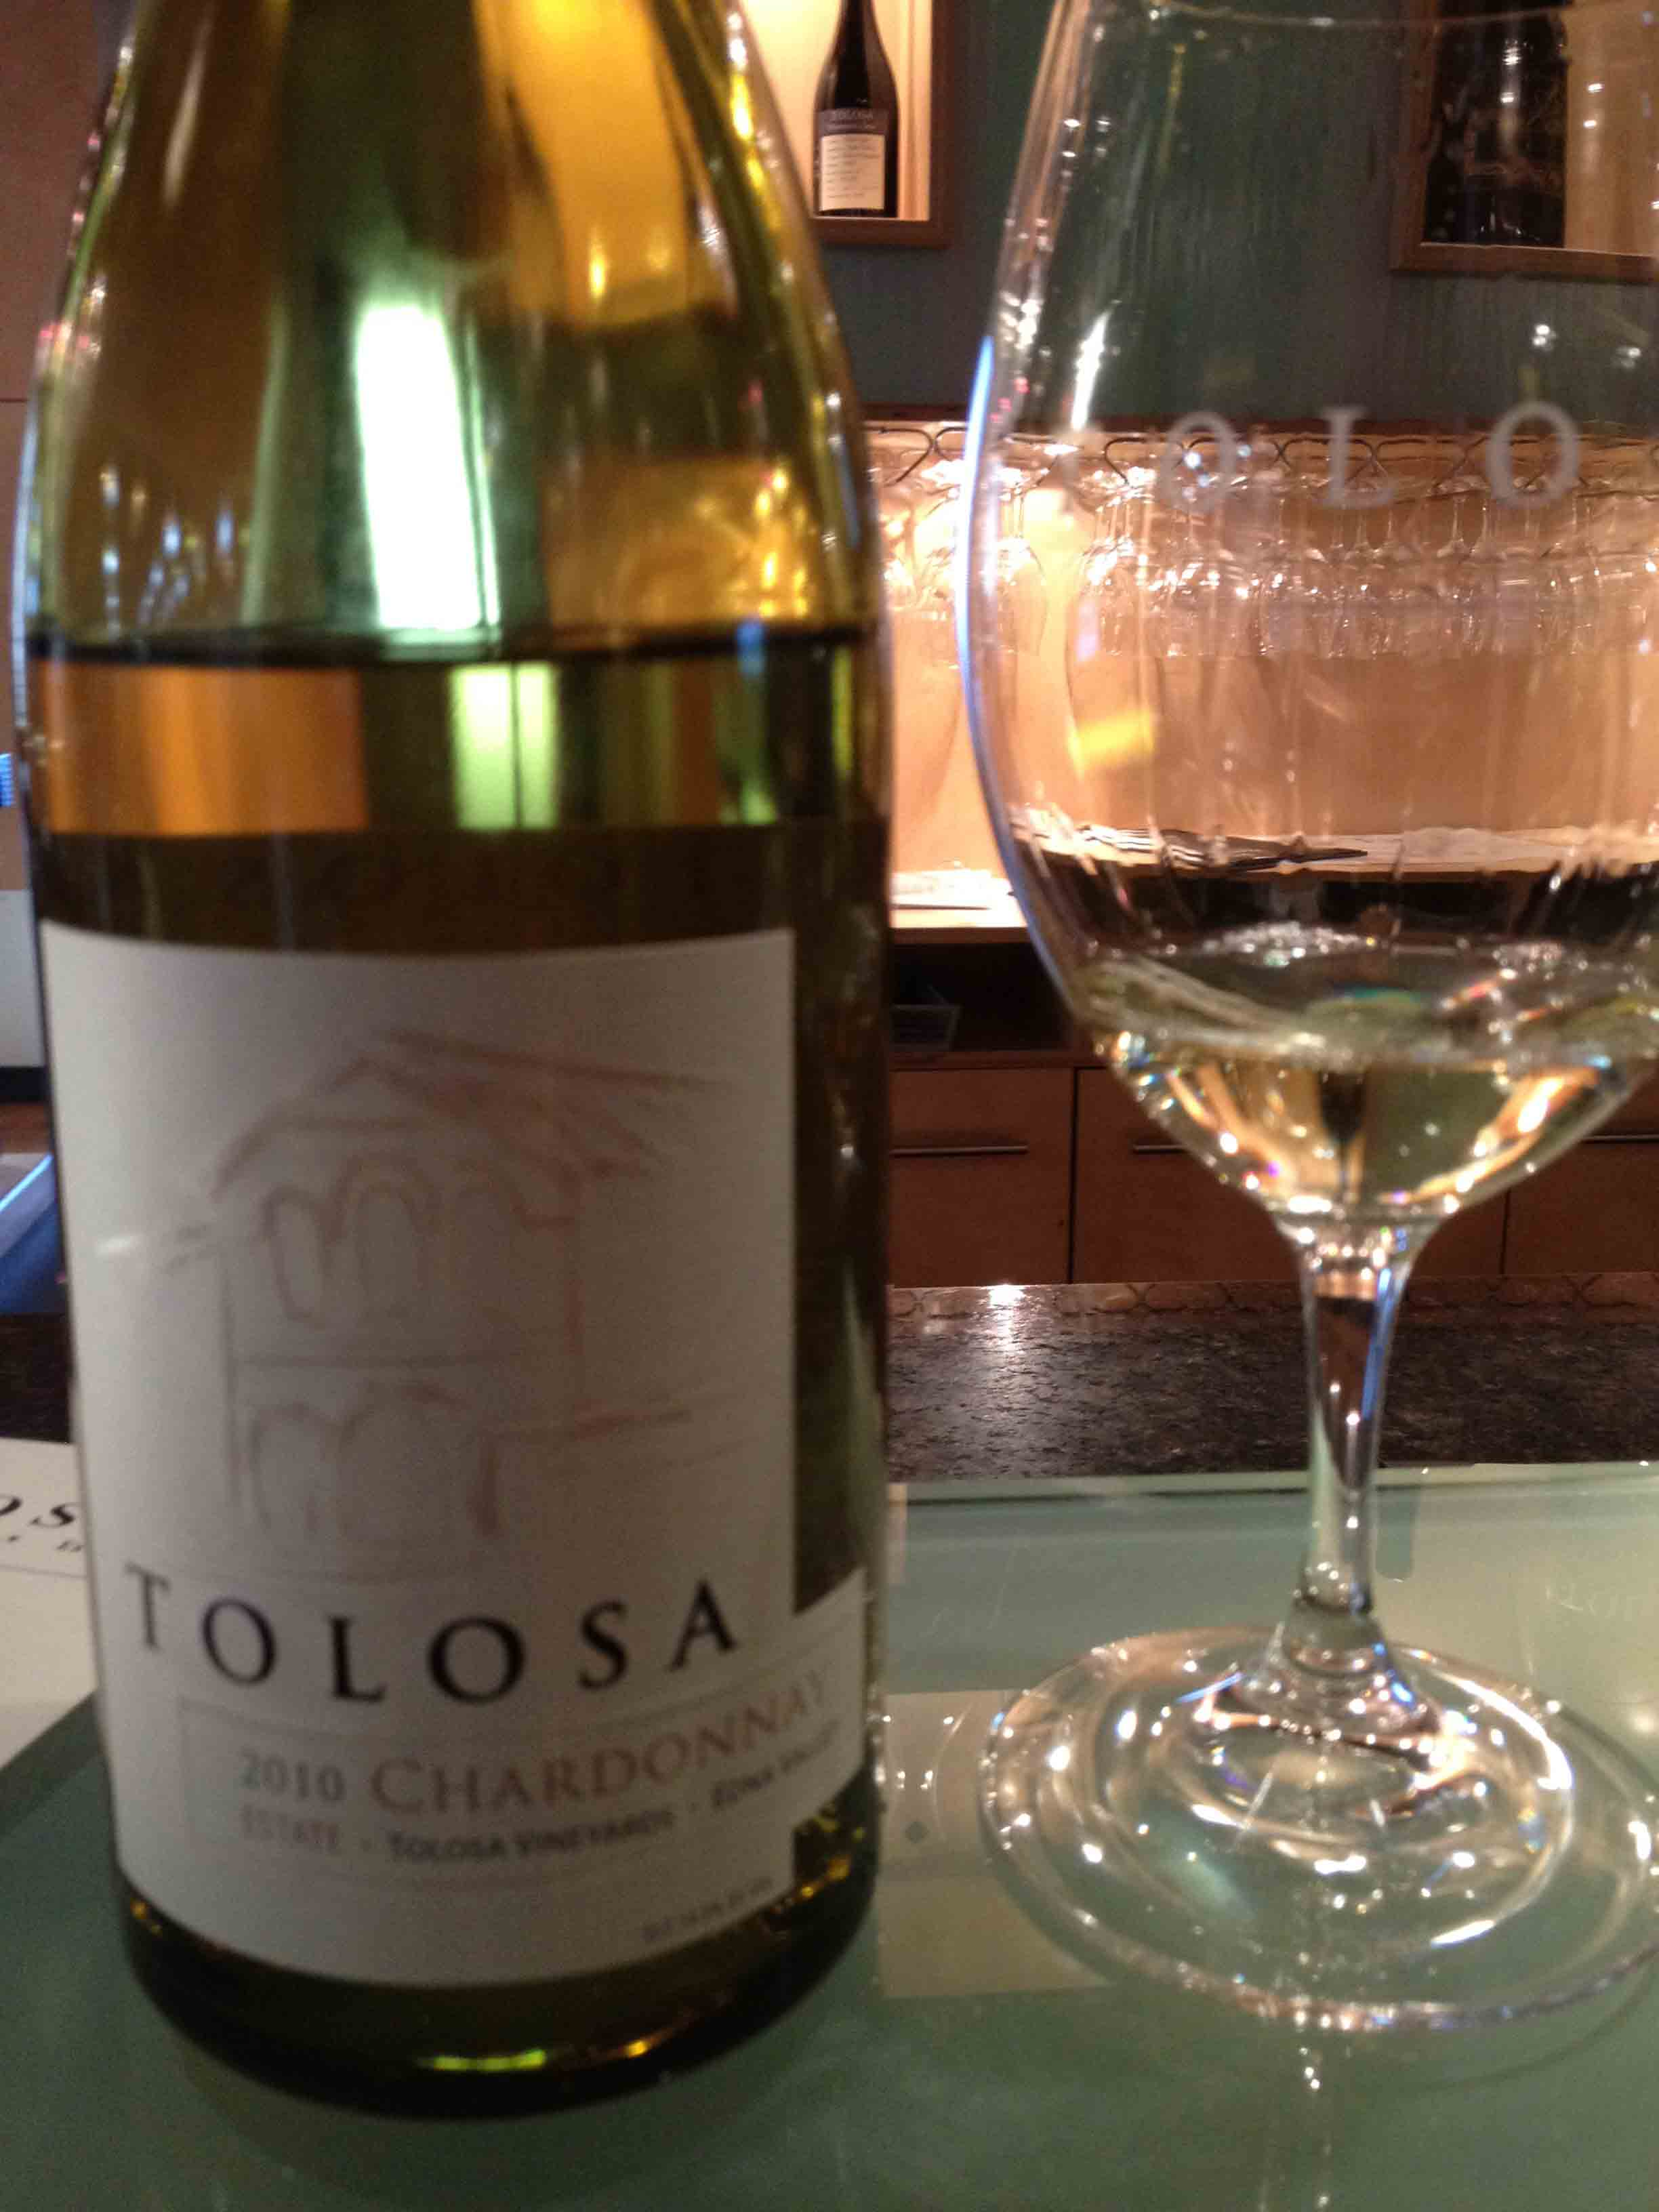 TOLOSA – Chardonnay 2010 – Edna Valley – South Coast